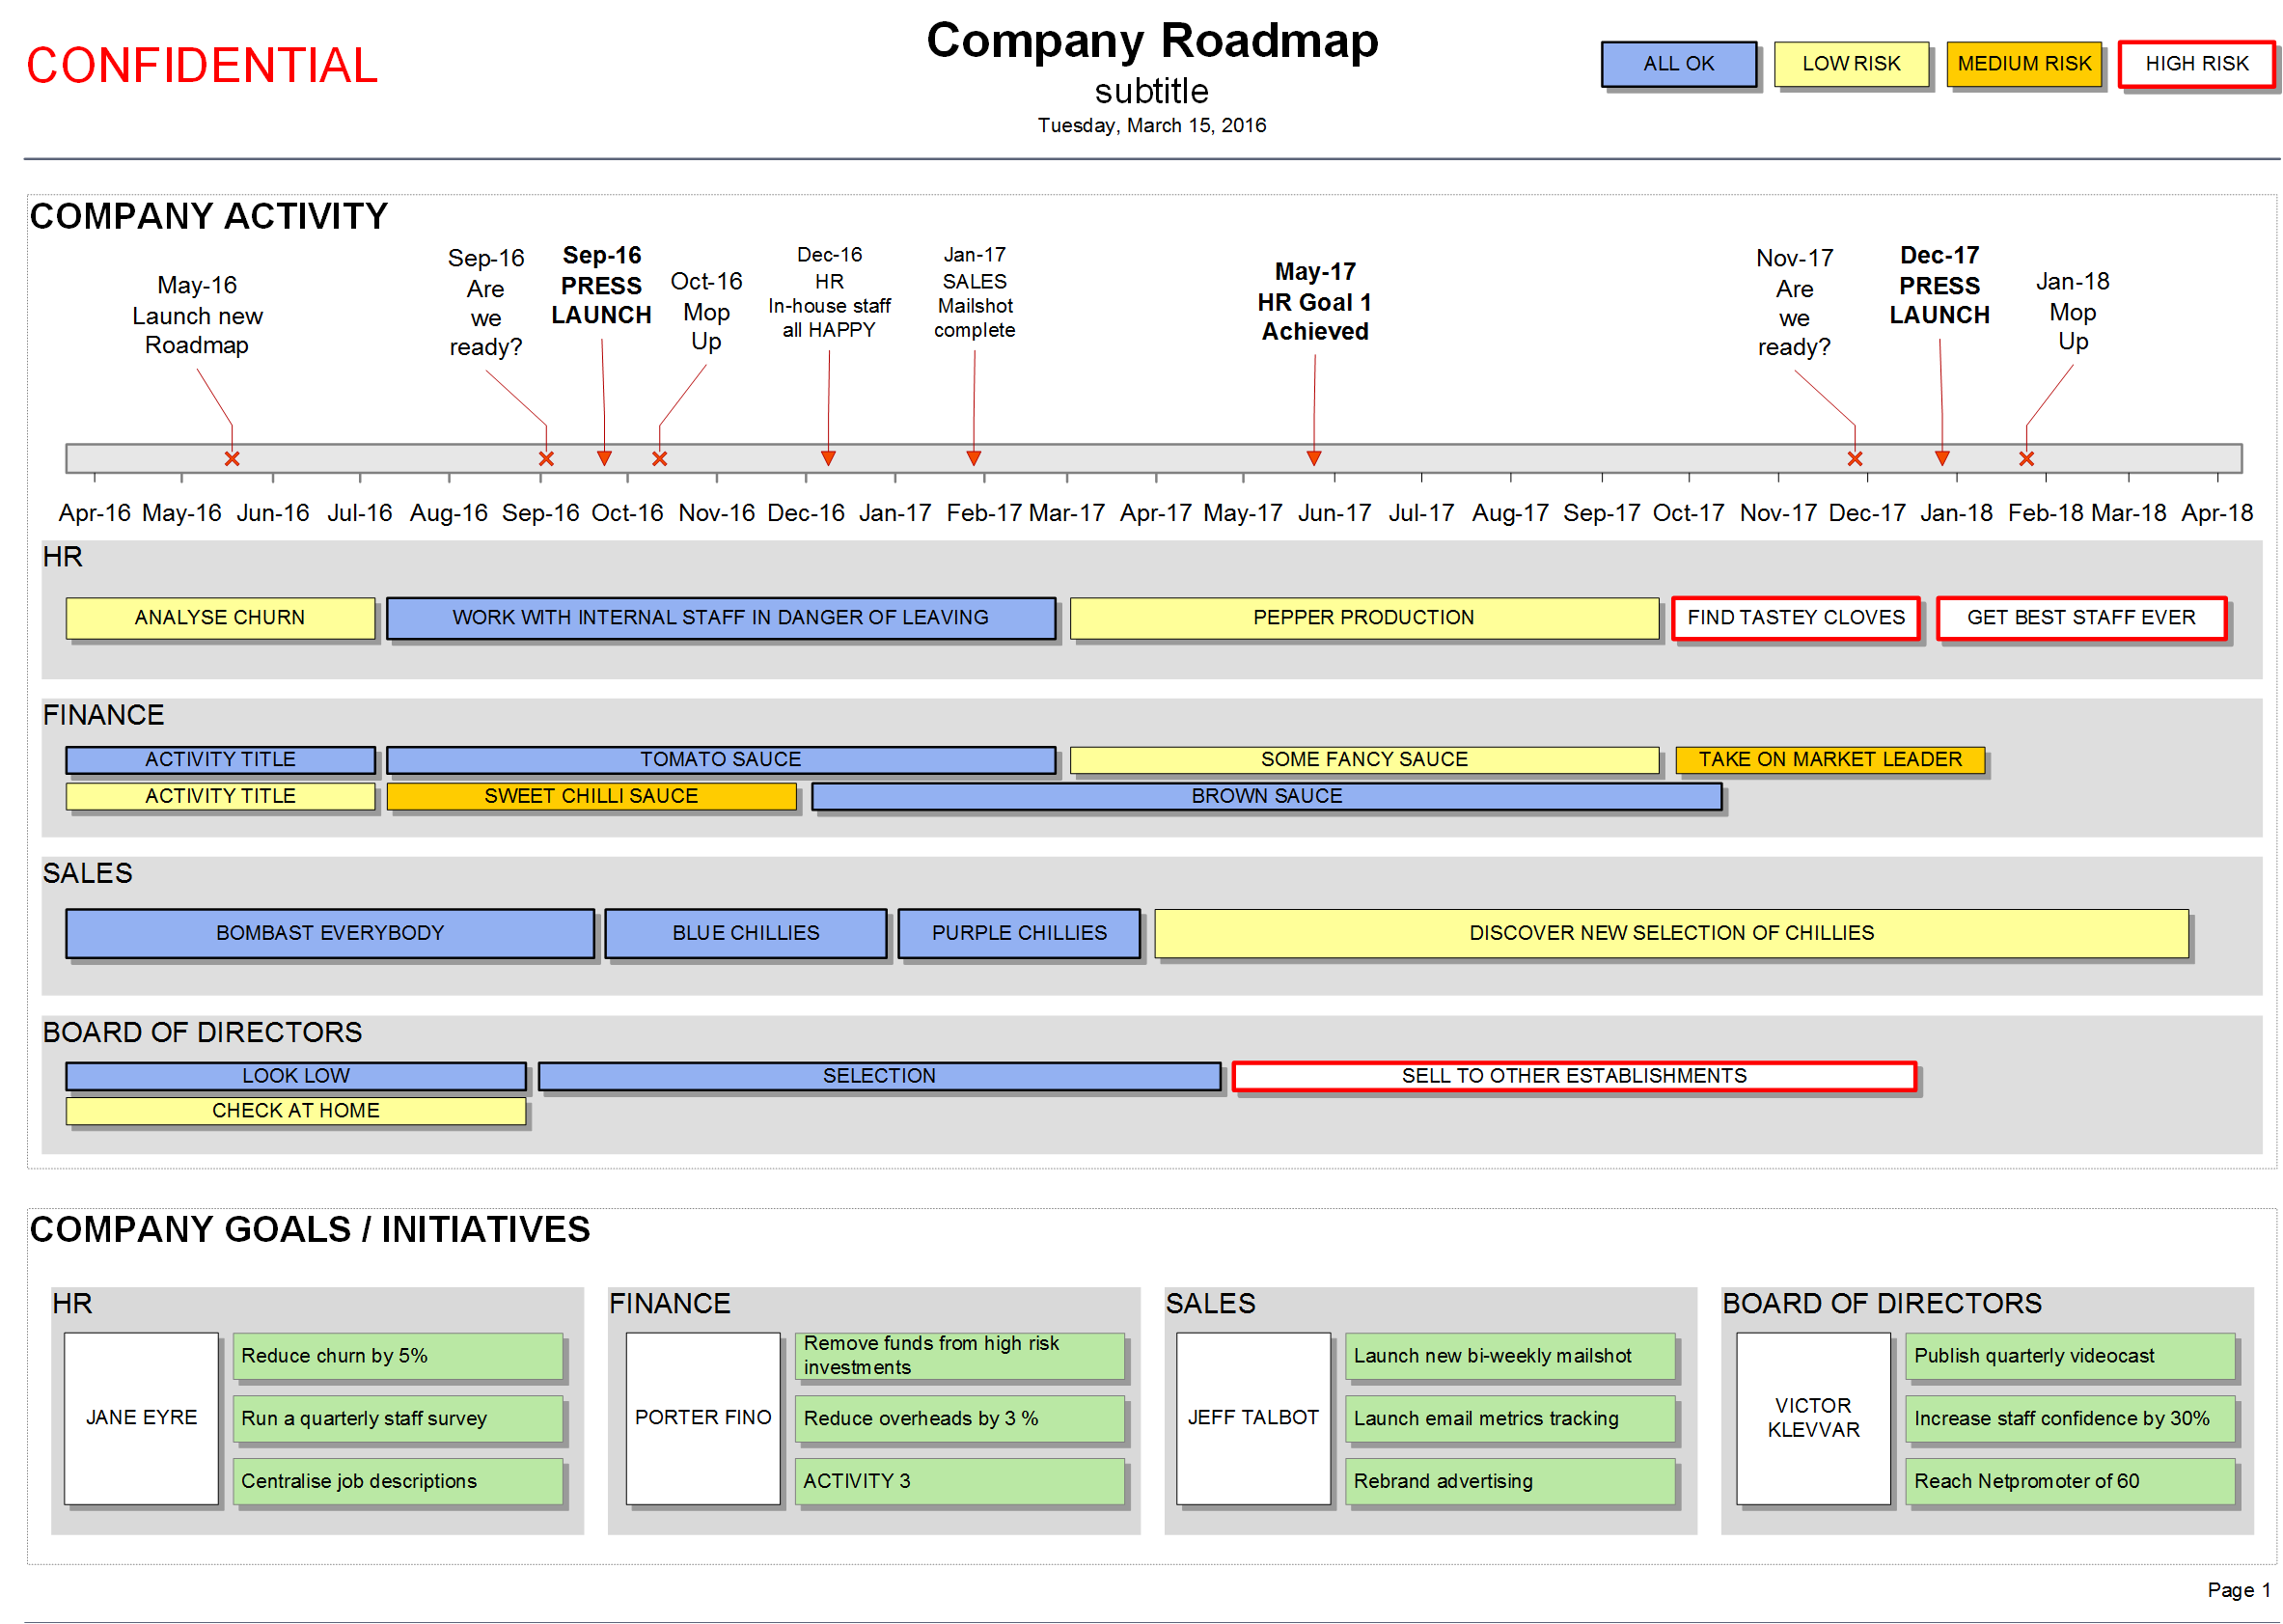 Company Roadmap Template